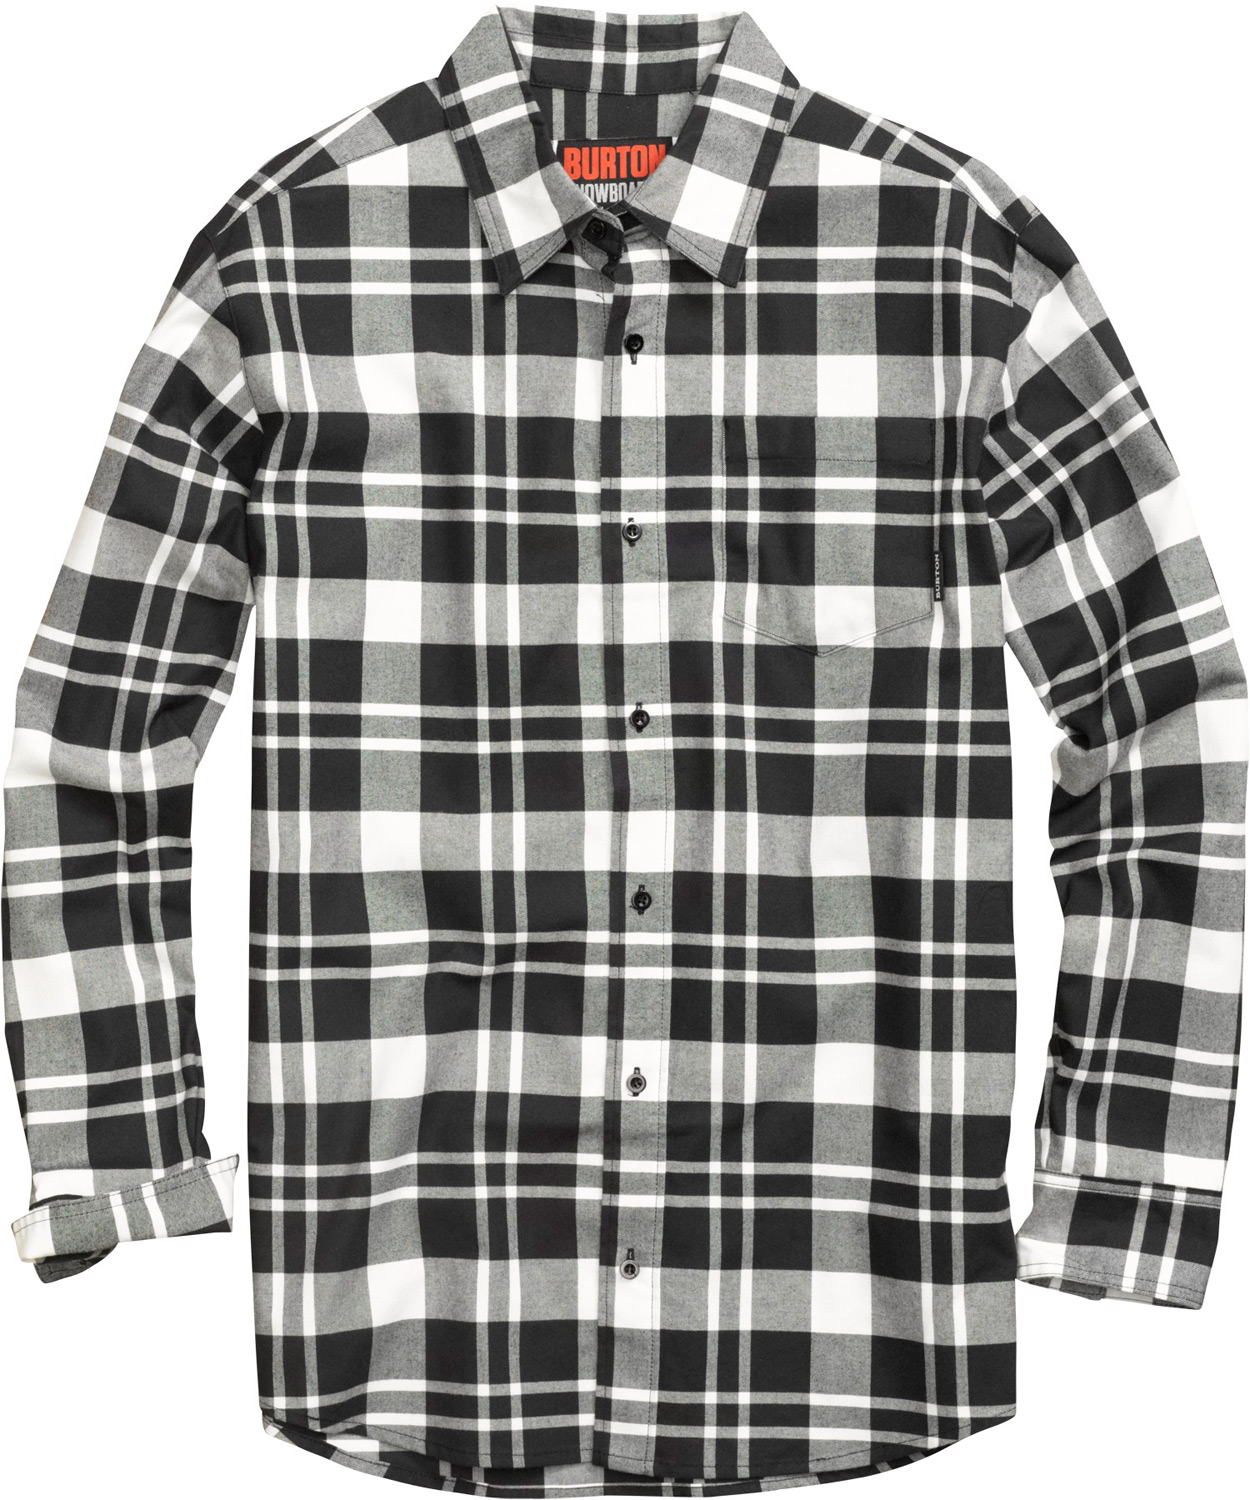 Snowboard Rustic appeal meets modern feel. Quick-drying, stink-fighting flannel for on or off-hill style.Key Features of the Burton Repel Flannel: DRYRIDE Ultrawick Yarn-Dyed Polyester/Cotton Blend Fabric with Mist-Defy Quick-Drying and Highly Breathable Stink-Proof Antimicrobial Finish Chest Pocket Button-Up Closure - $50.95